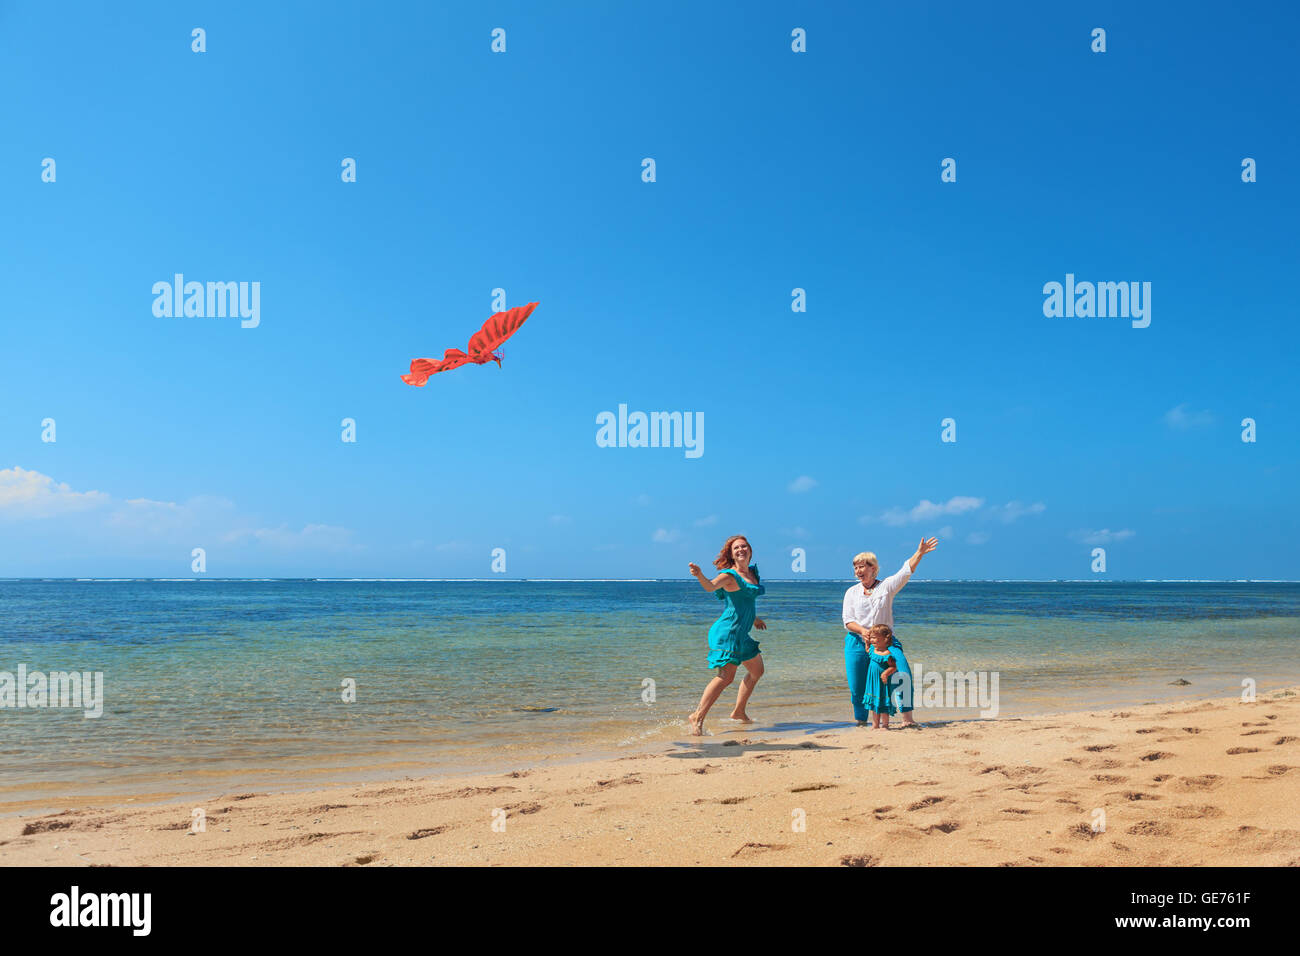 Happy family on beach - grandmother, mother, baby girl have fun, woman runs along sea surf with water splashes launching - Stock Image